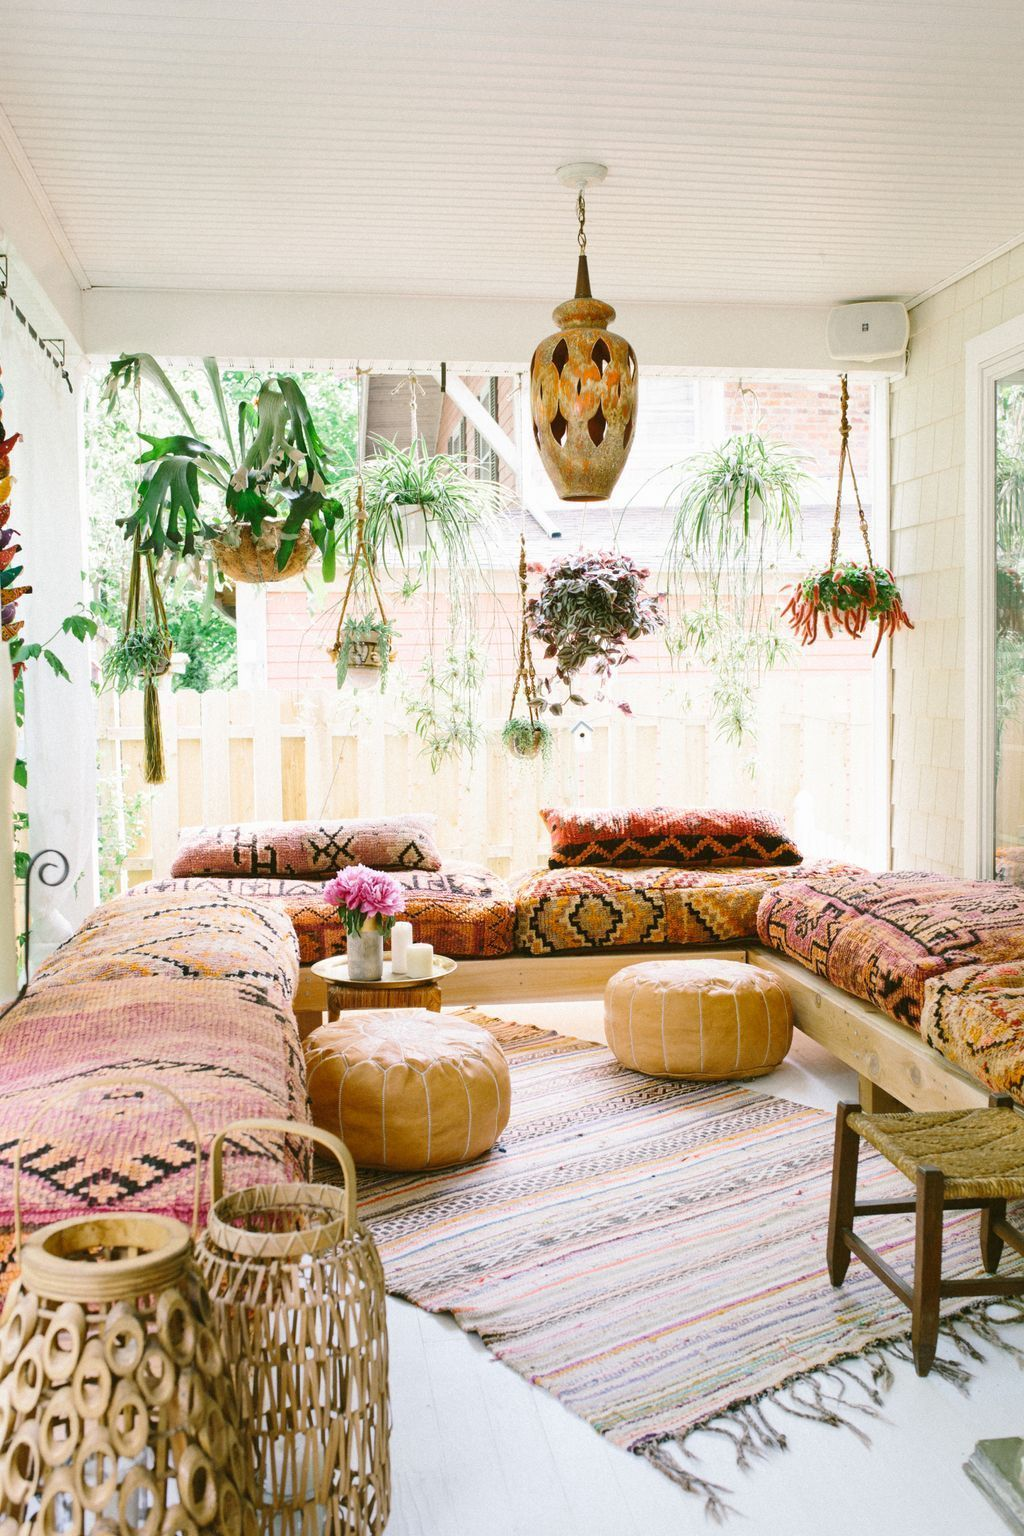 Pin by manda p on my home pinterest lanai porch and room